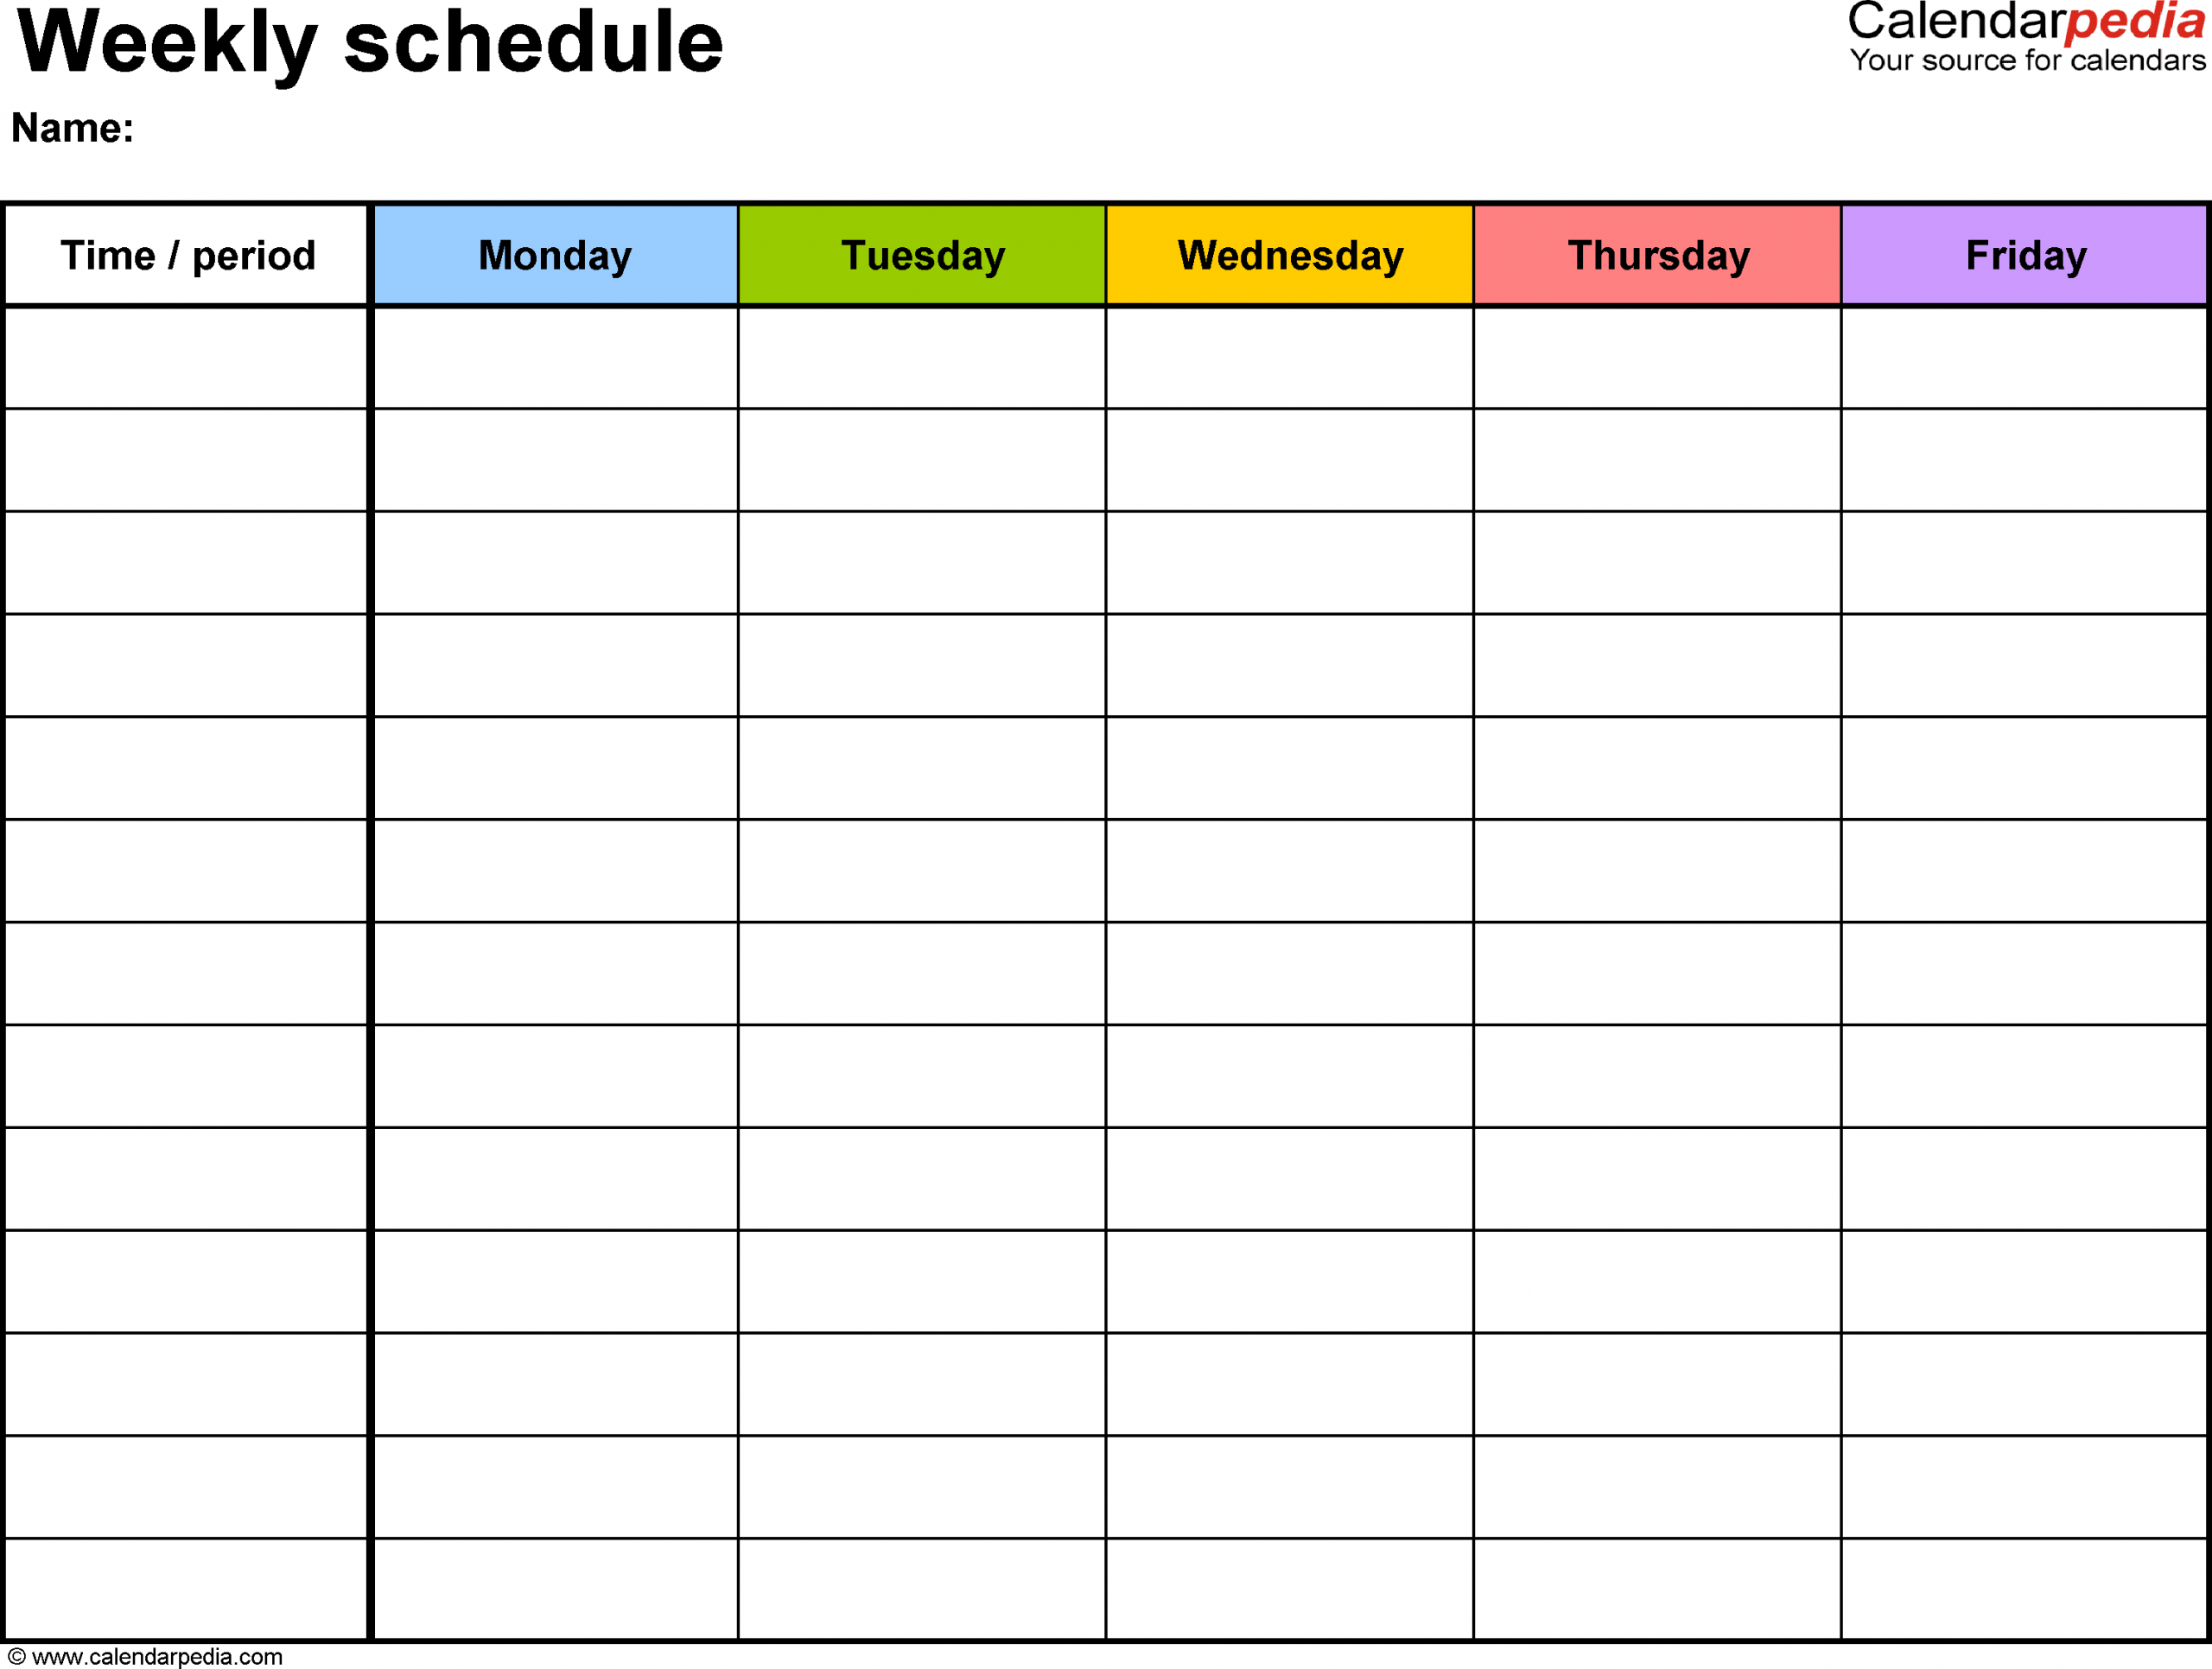 Weekly Schedule Template For Word Version 1: Landscape, 1 Sprint Days Calendar Excel